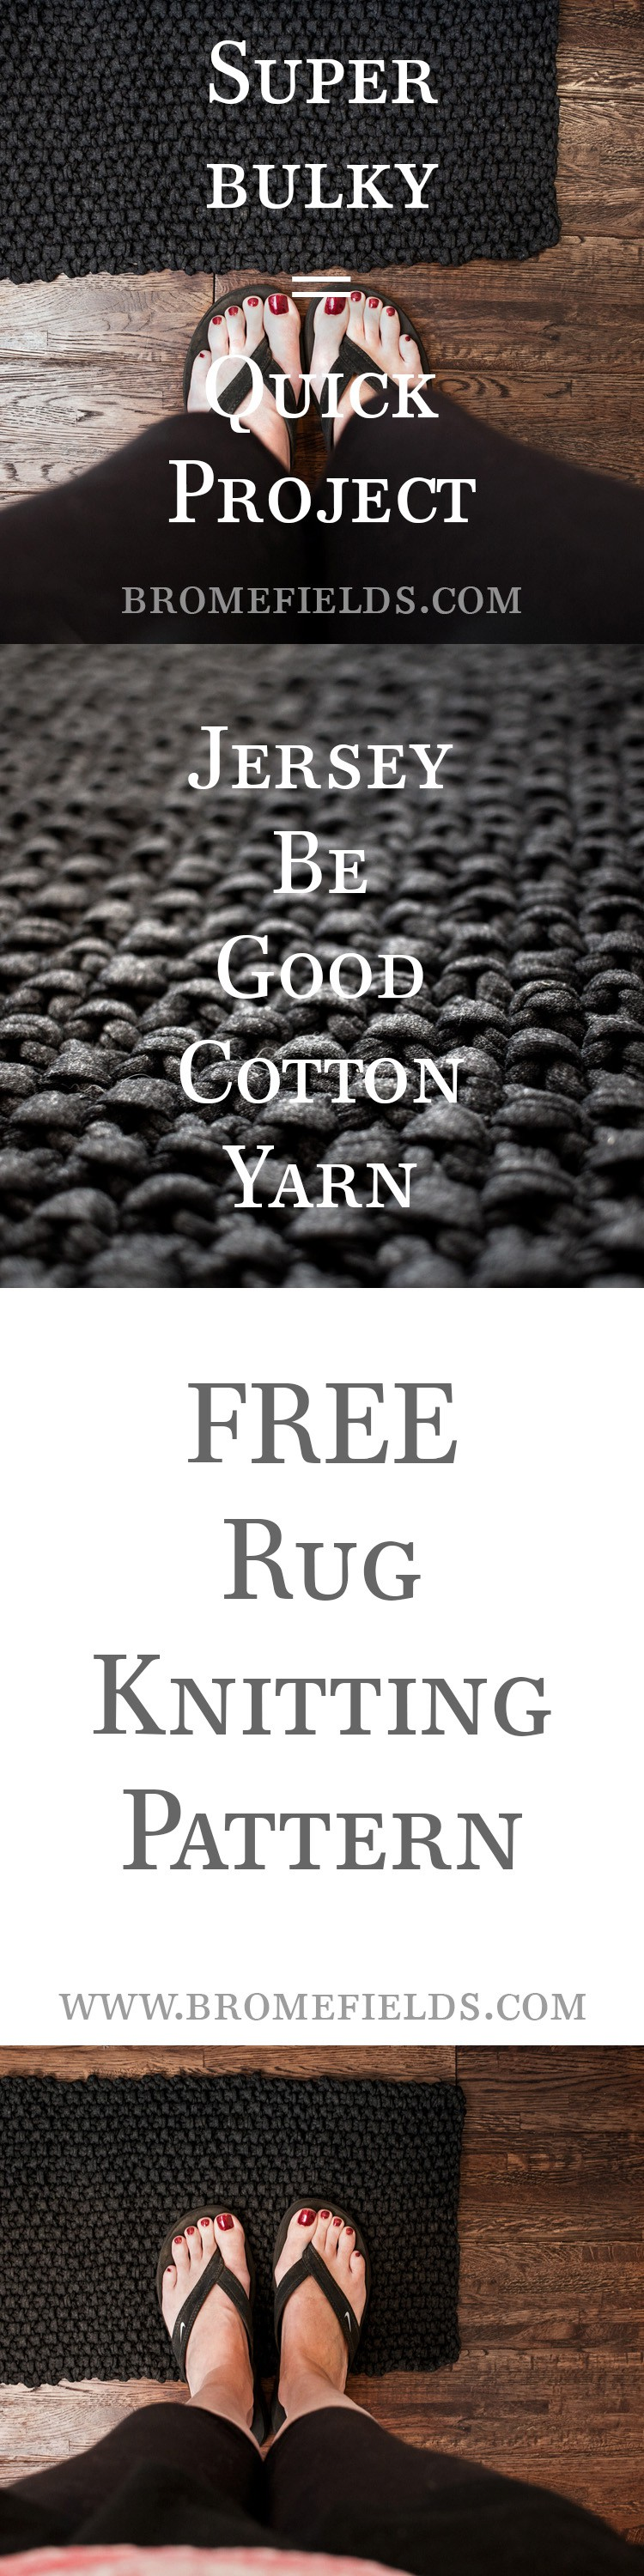 FREE Rug Knitting Pattern IDEALISM by Brome Fields